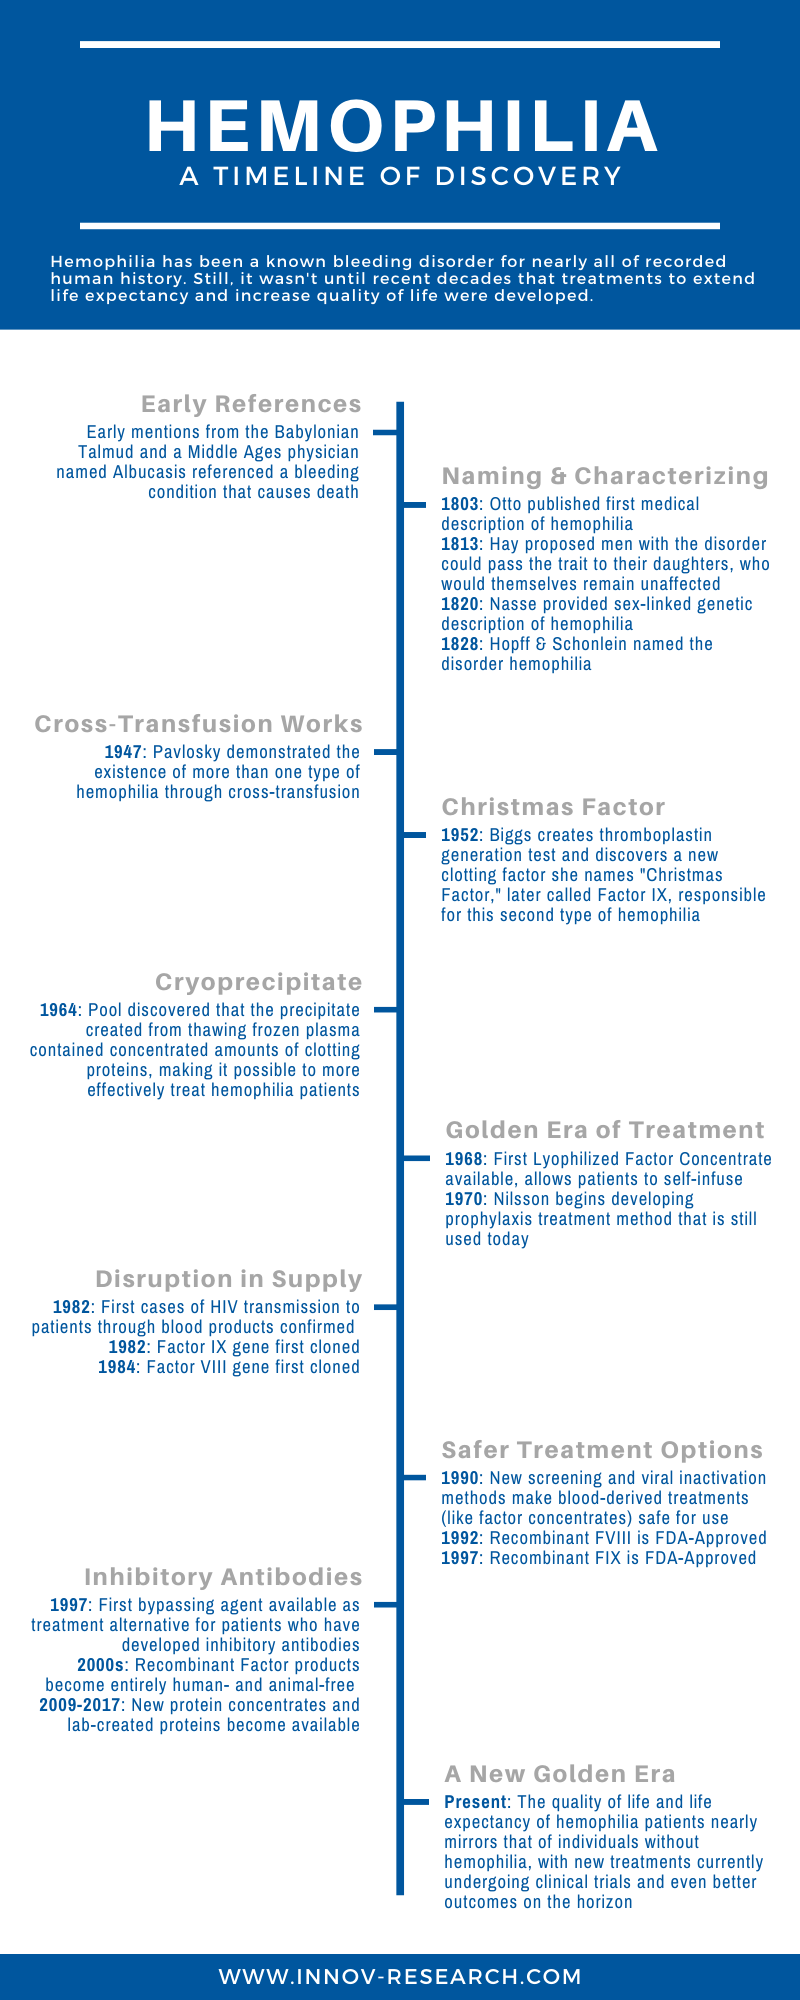 Timeline of Milestone in Hemophilia Research